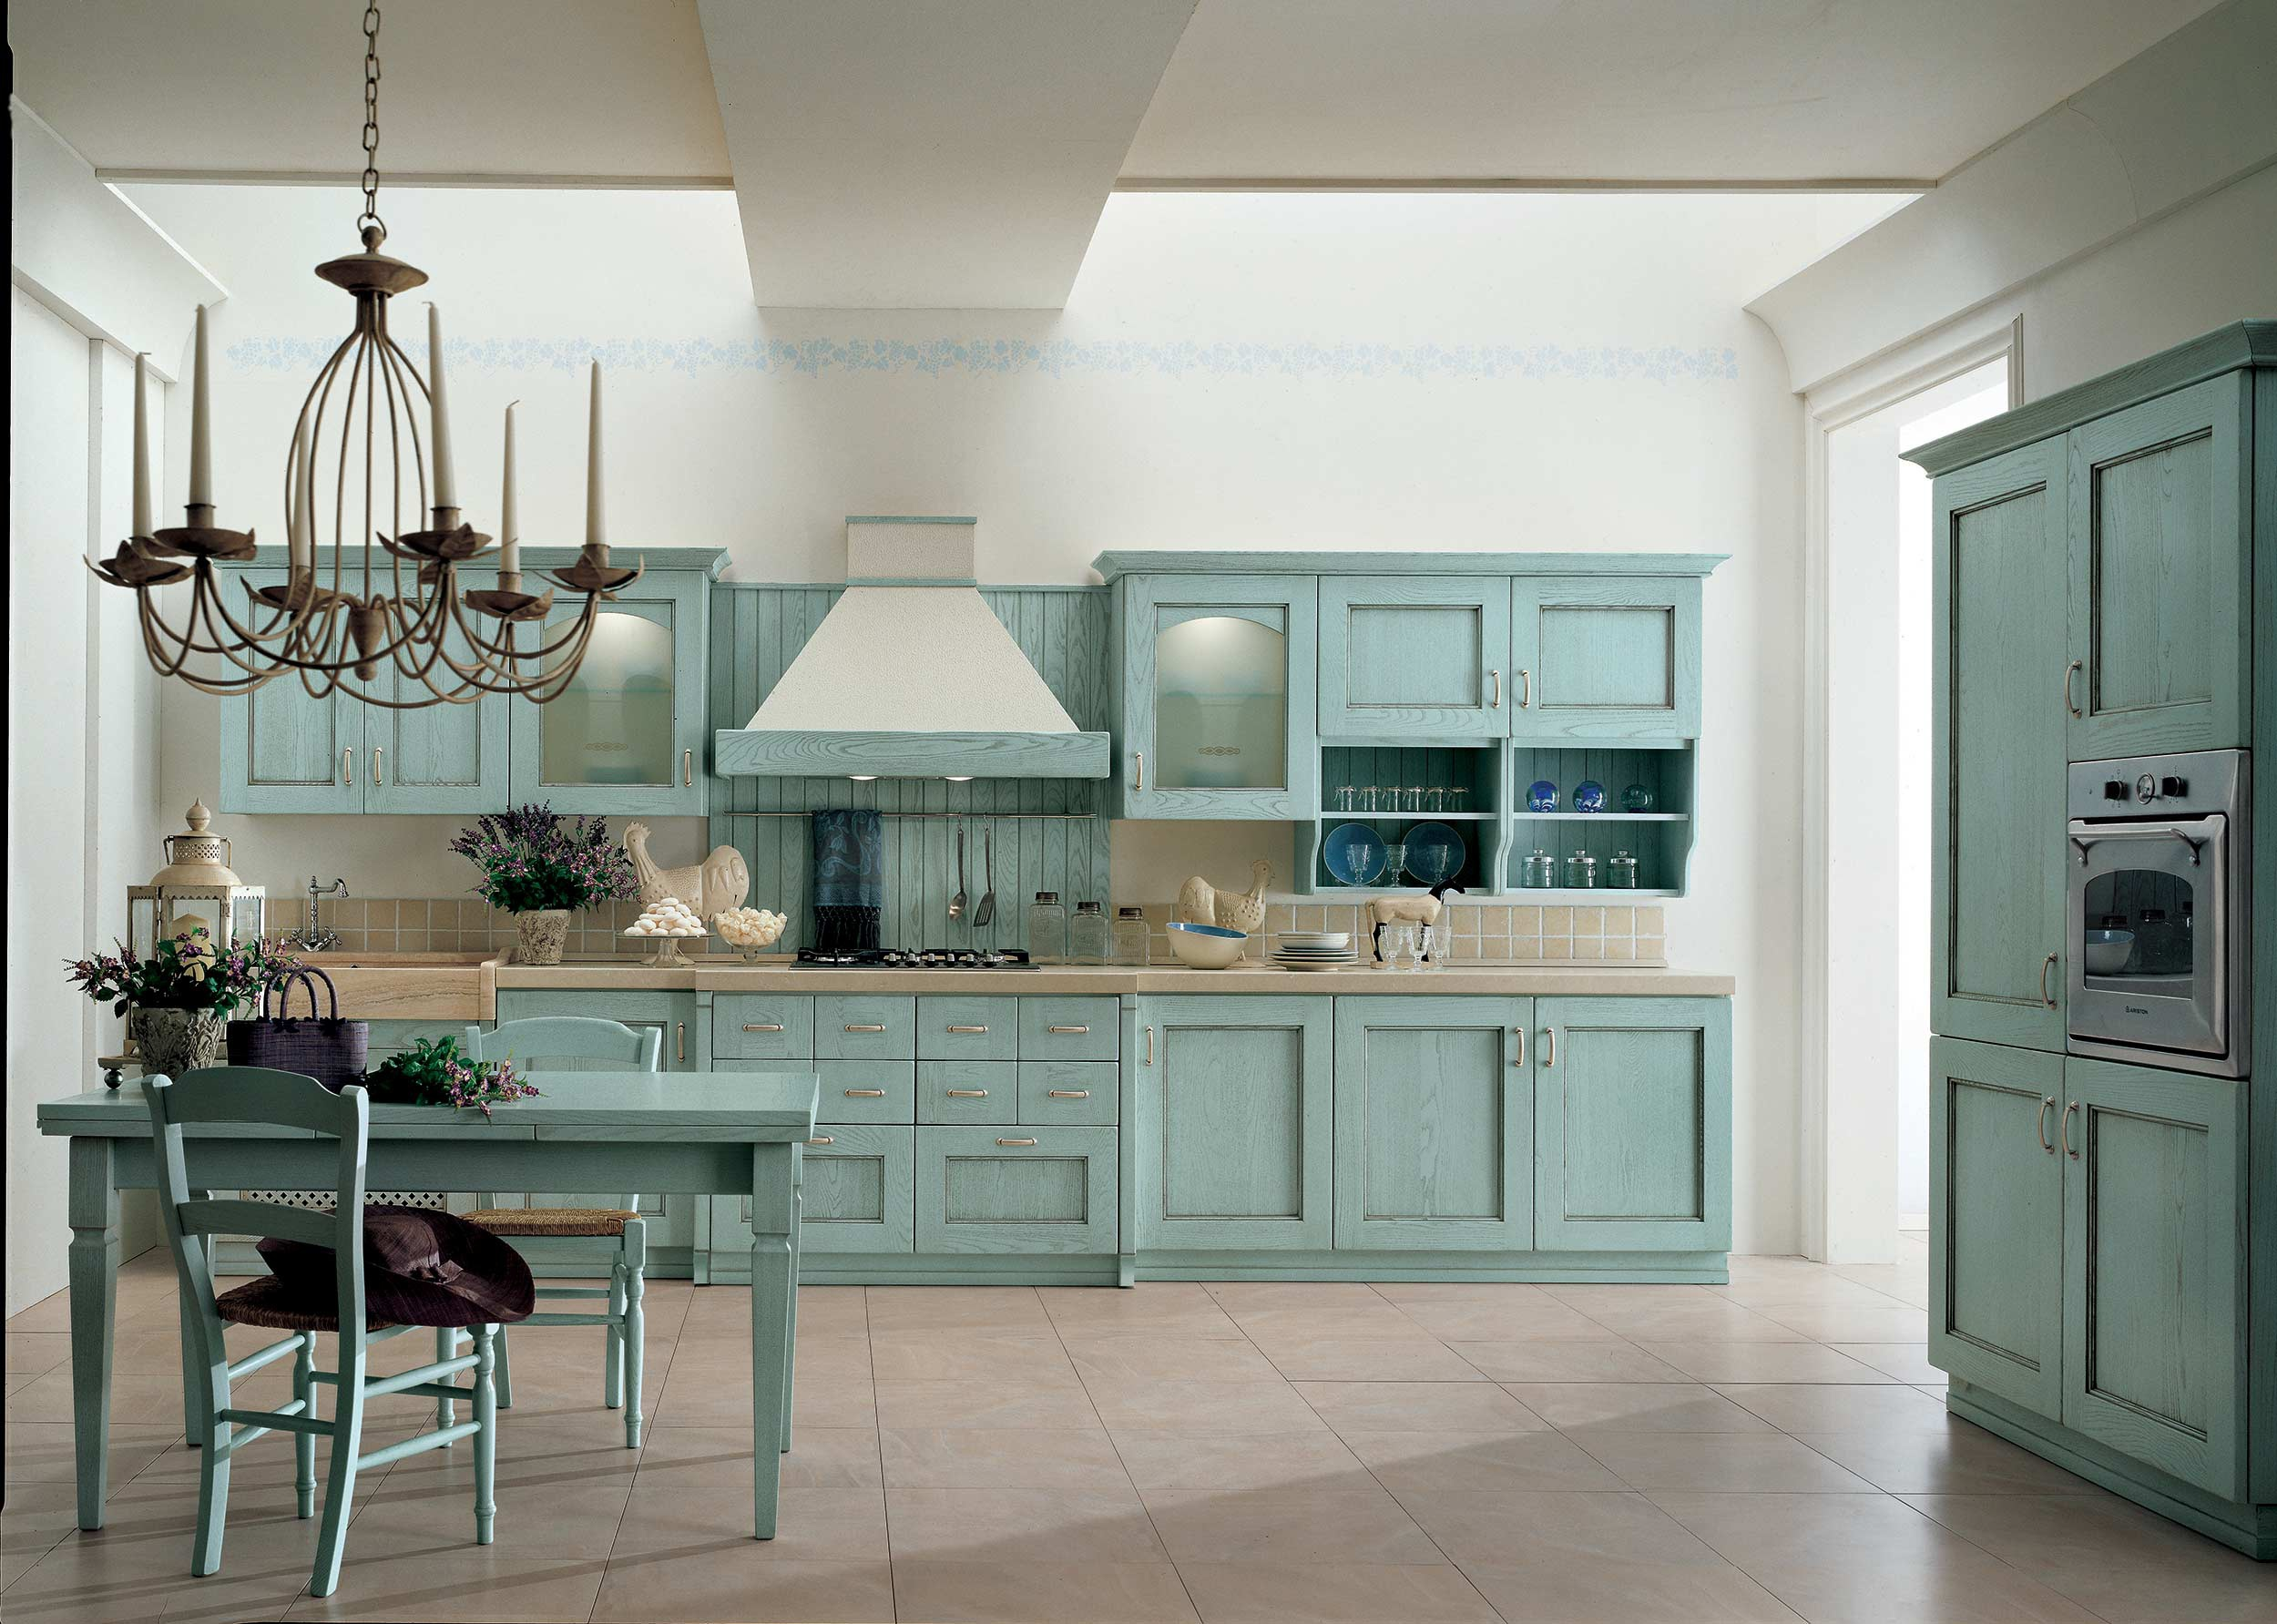 Kitchen (Suite kitchen) of wood Certosa, Stosa - Luxury furniture MR